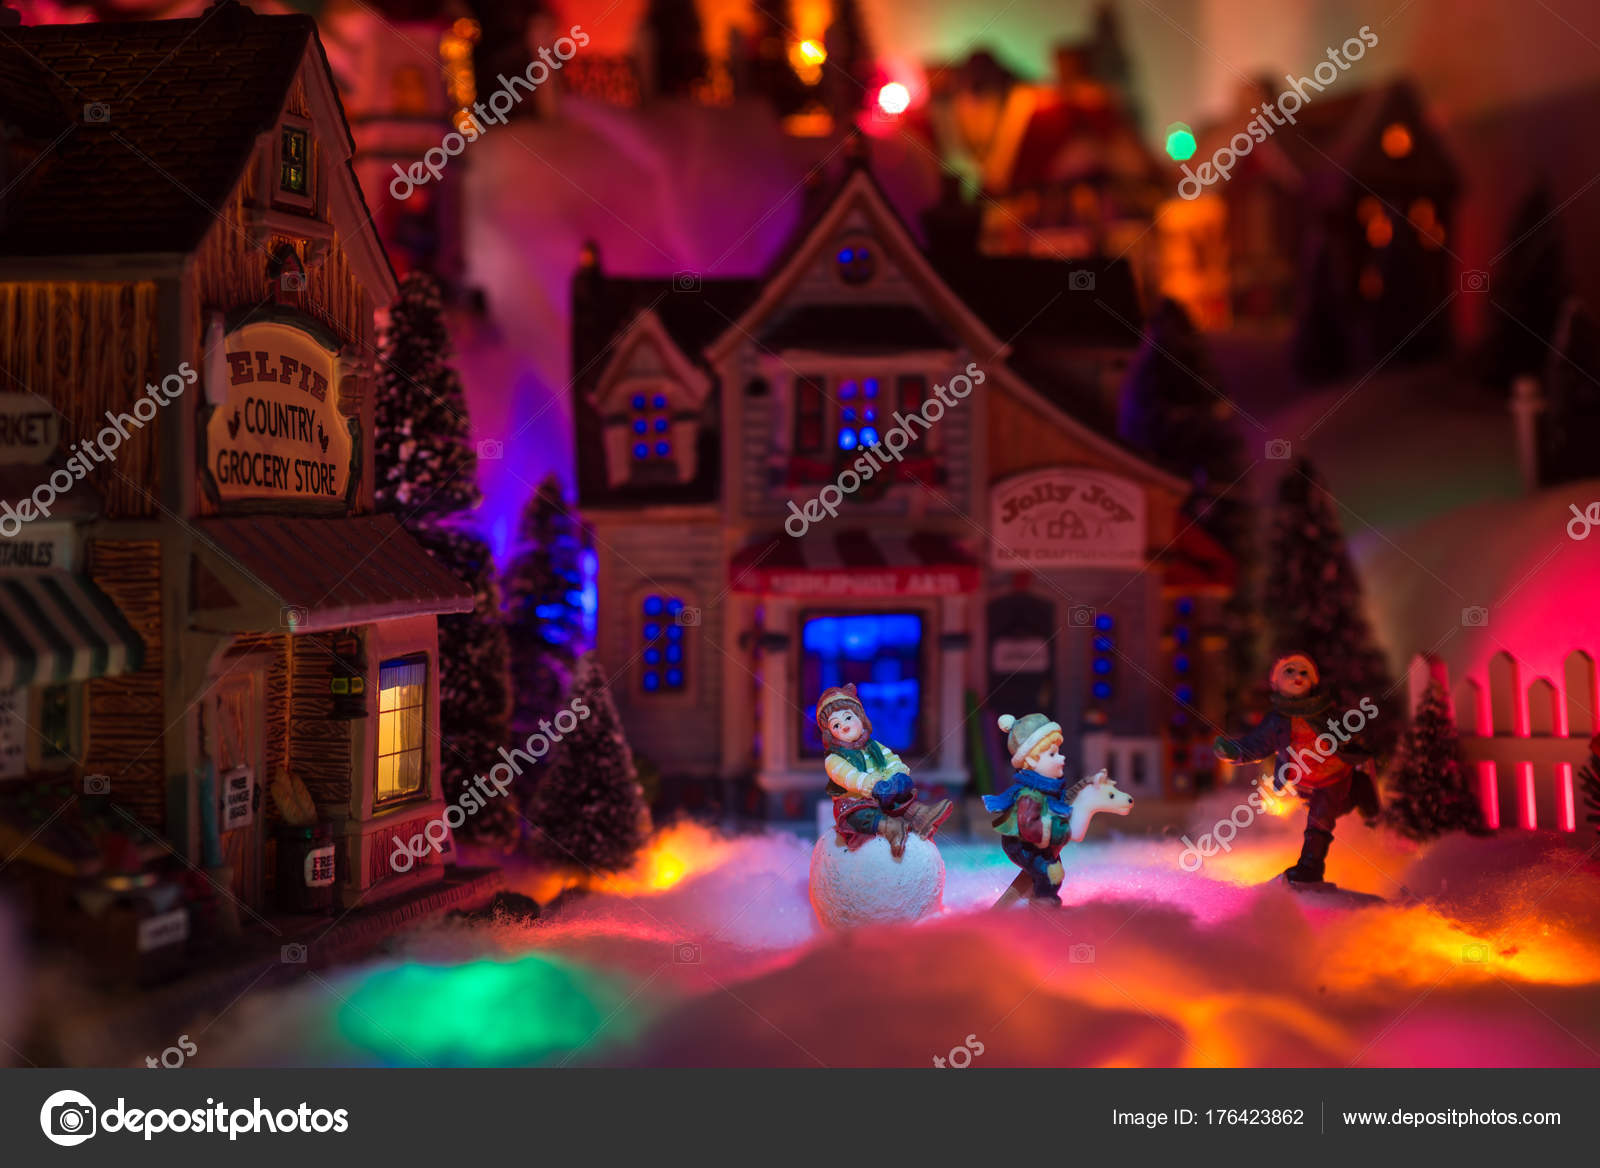 Christmas Scenery Concept With Kids Happy Playing In Snow In The Stock Photo C Joecce 176423862